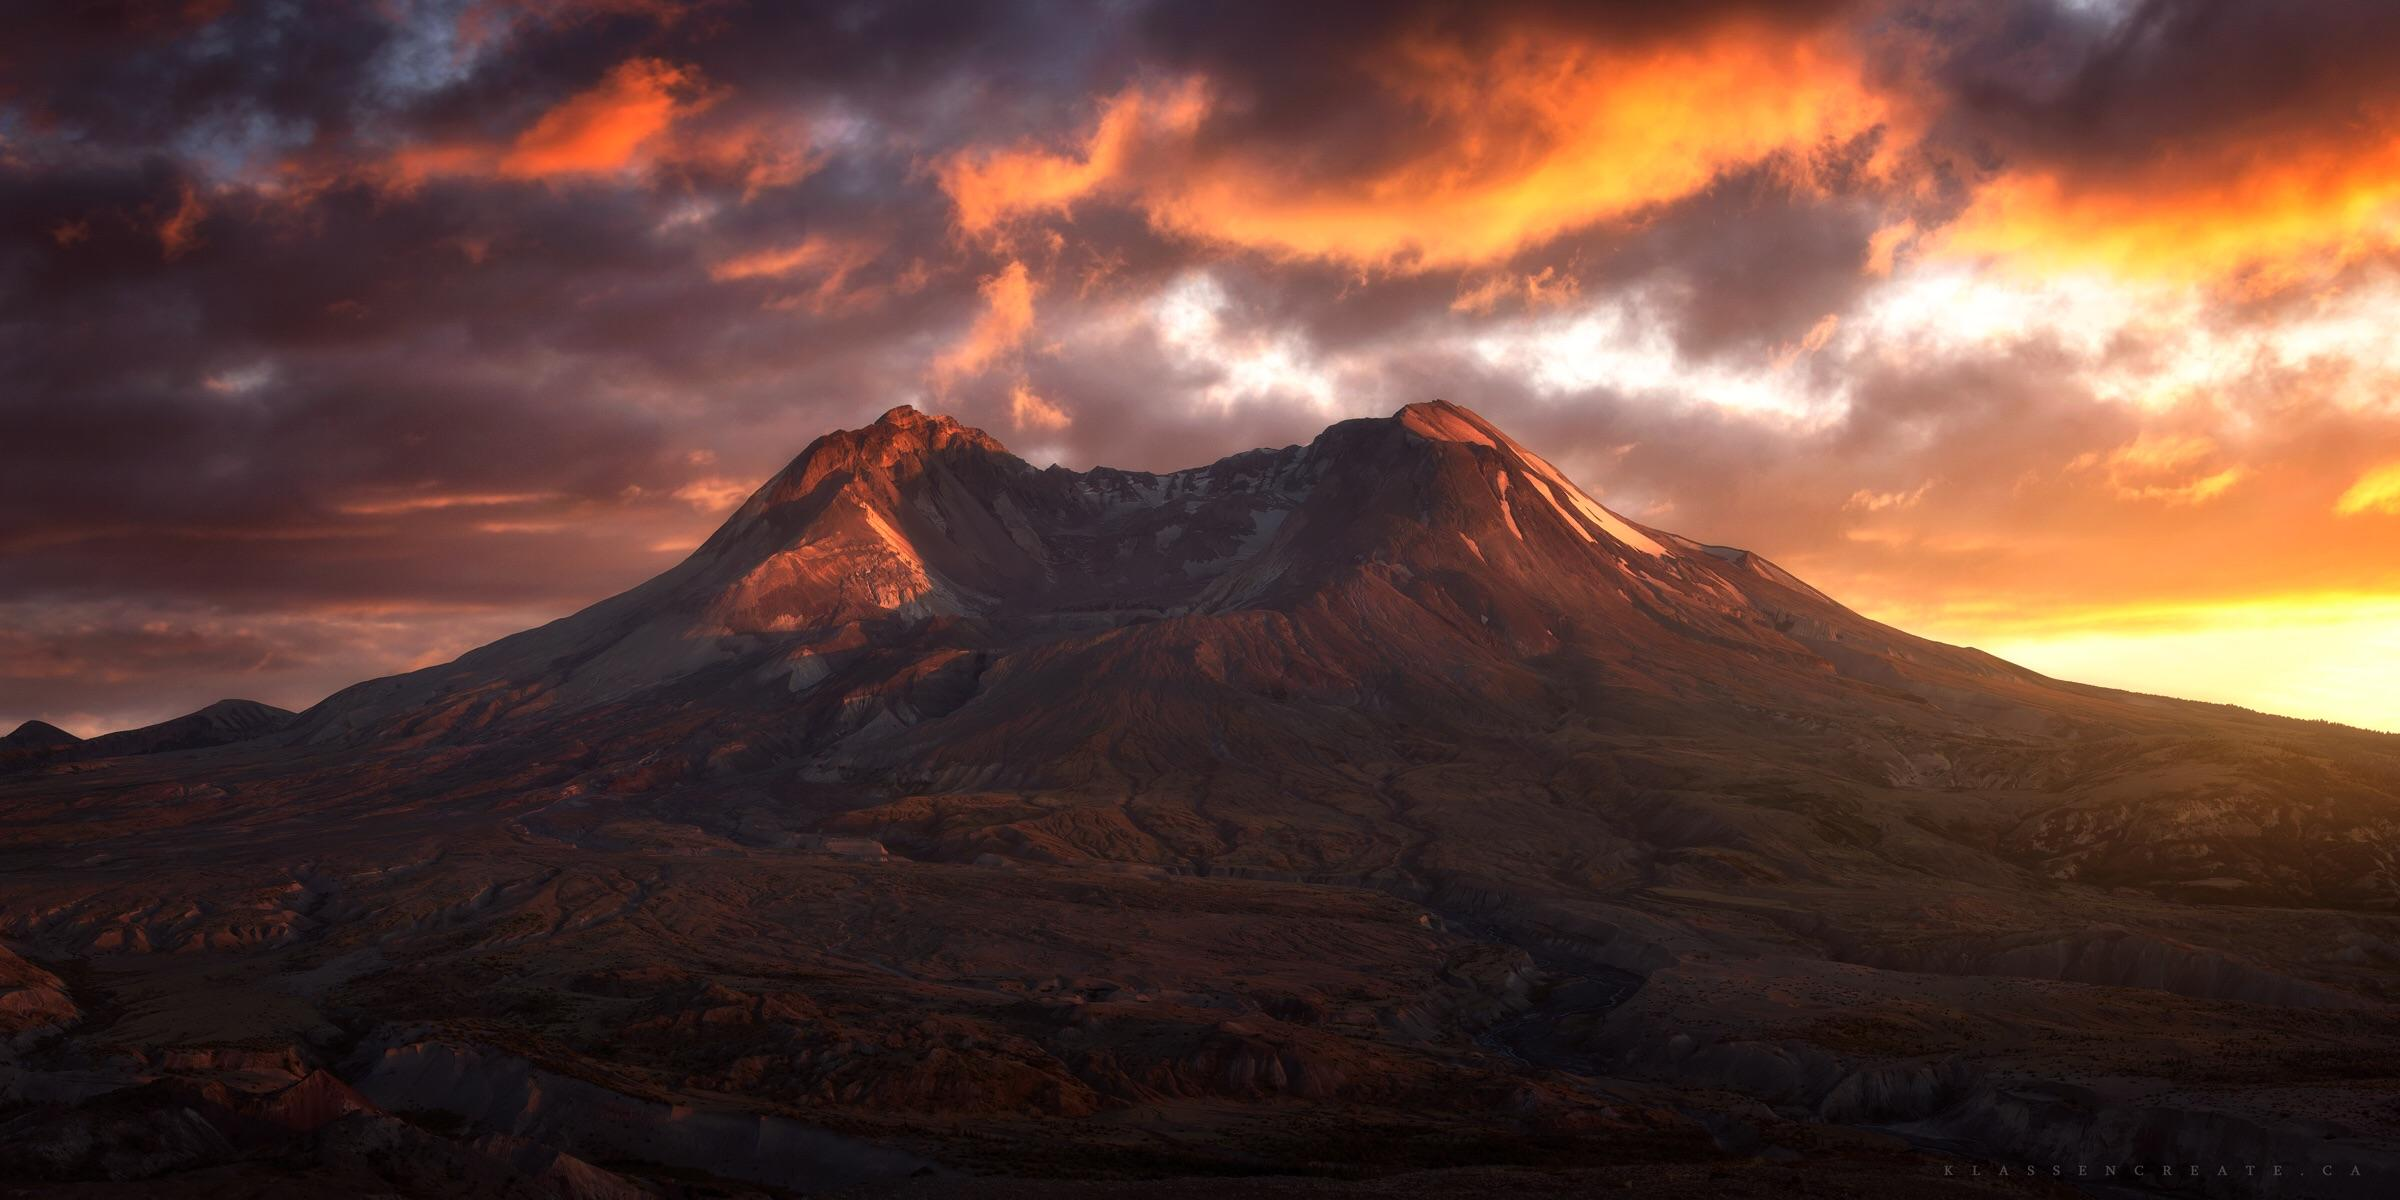 Yosemite Lava Falls Wallpaper The Glorious Mt St Helens Basking In The Last Light Of The